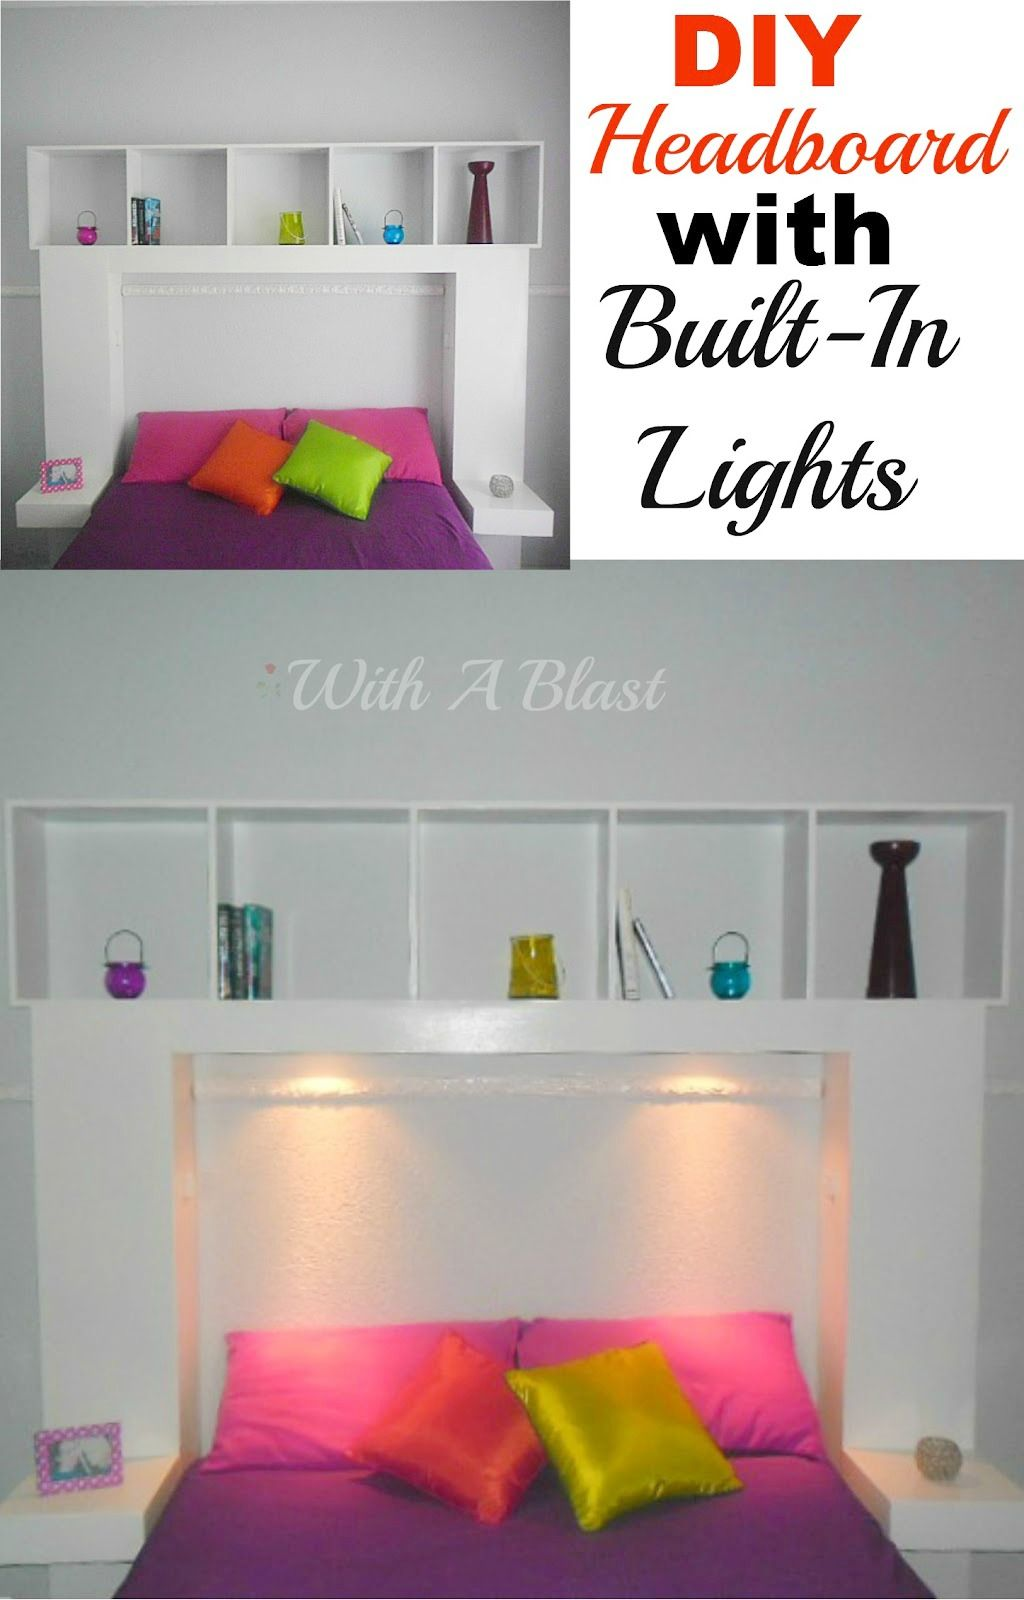 Diy headboard with builtin lights diy headboards easy and lights